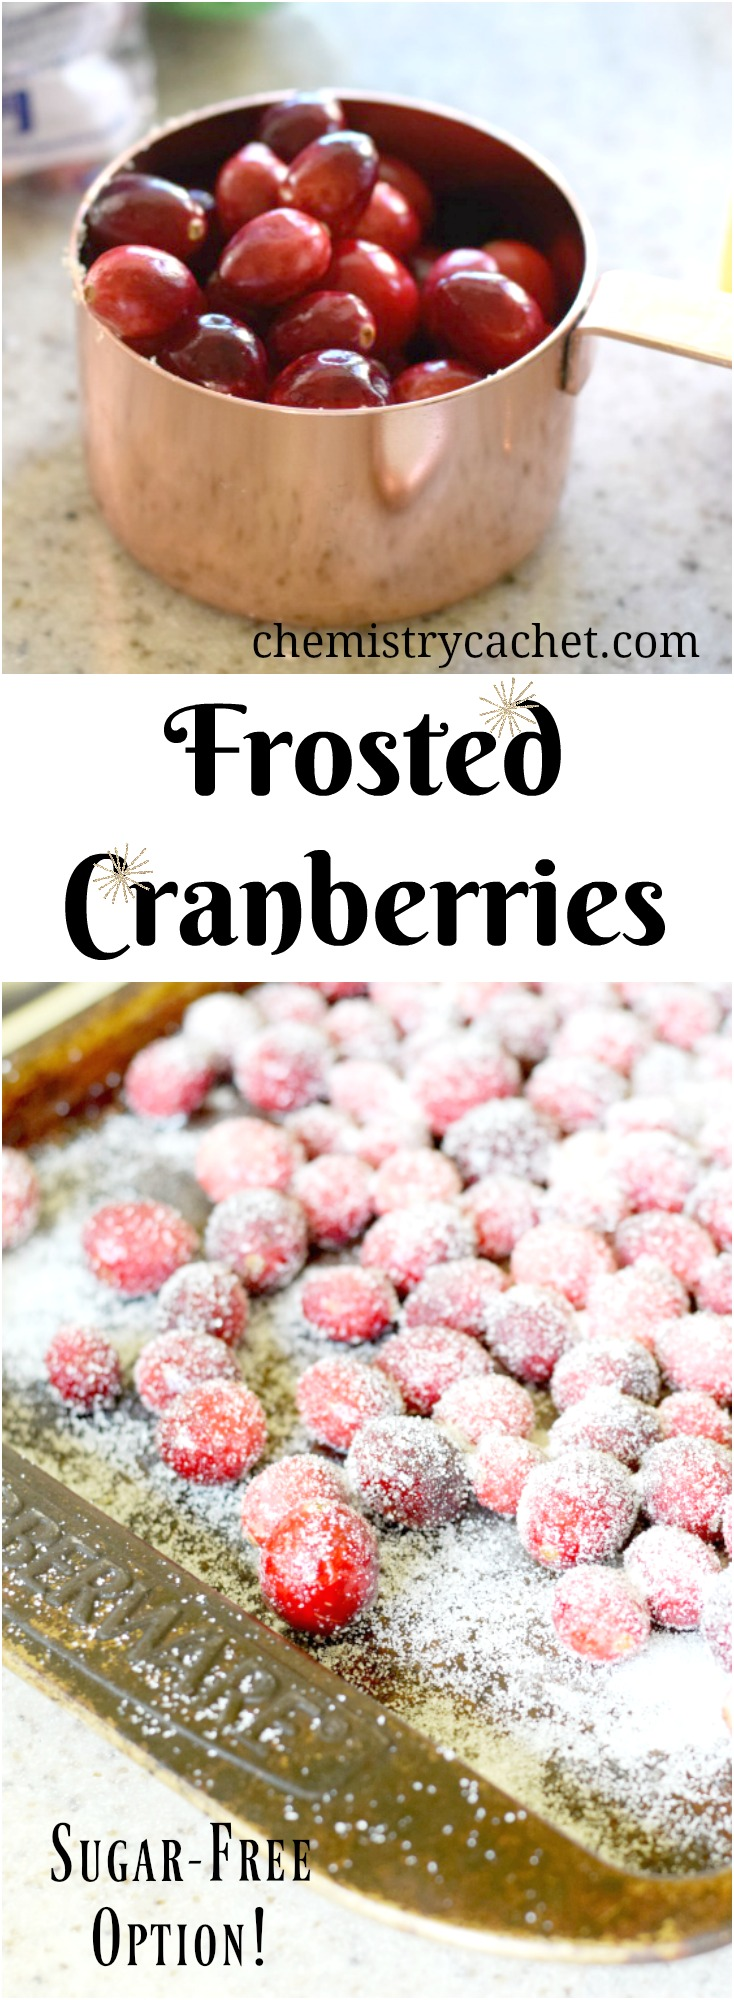 Frosted Cranberries Recipe. Easy and Beautiful! Plus sugar free cranberries on chemistrycachet.com